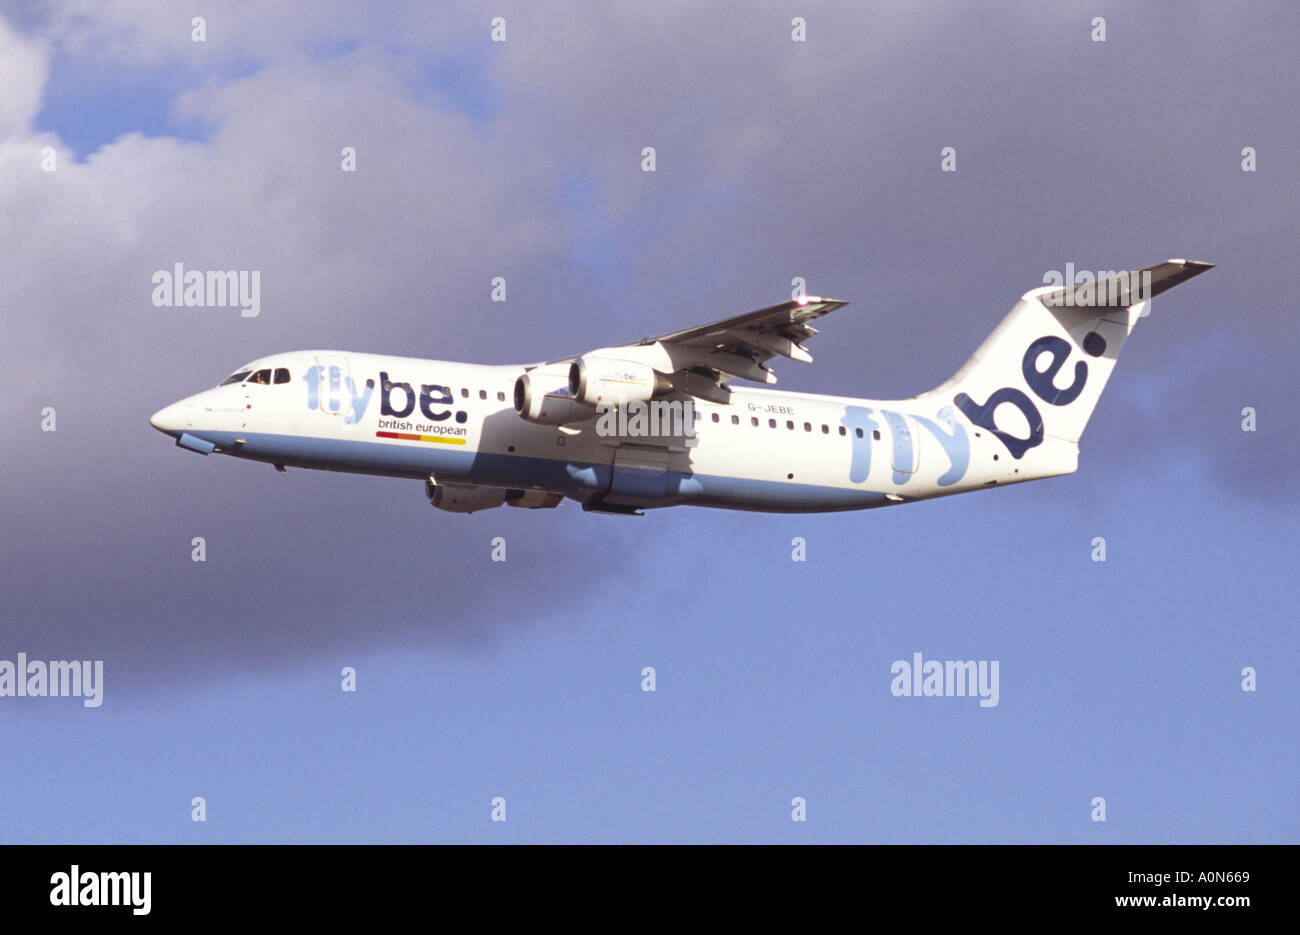 British Aerospace BAe 146 operated by Flybe. - Stock Image